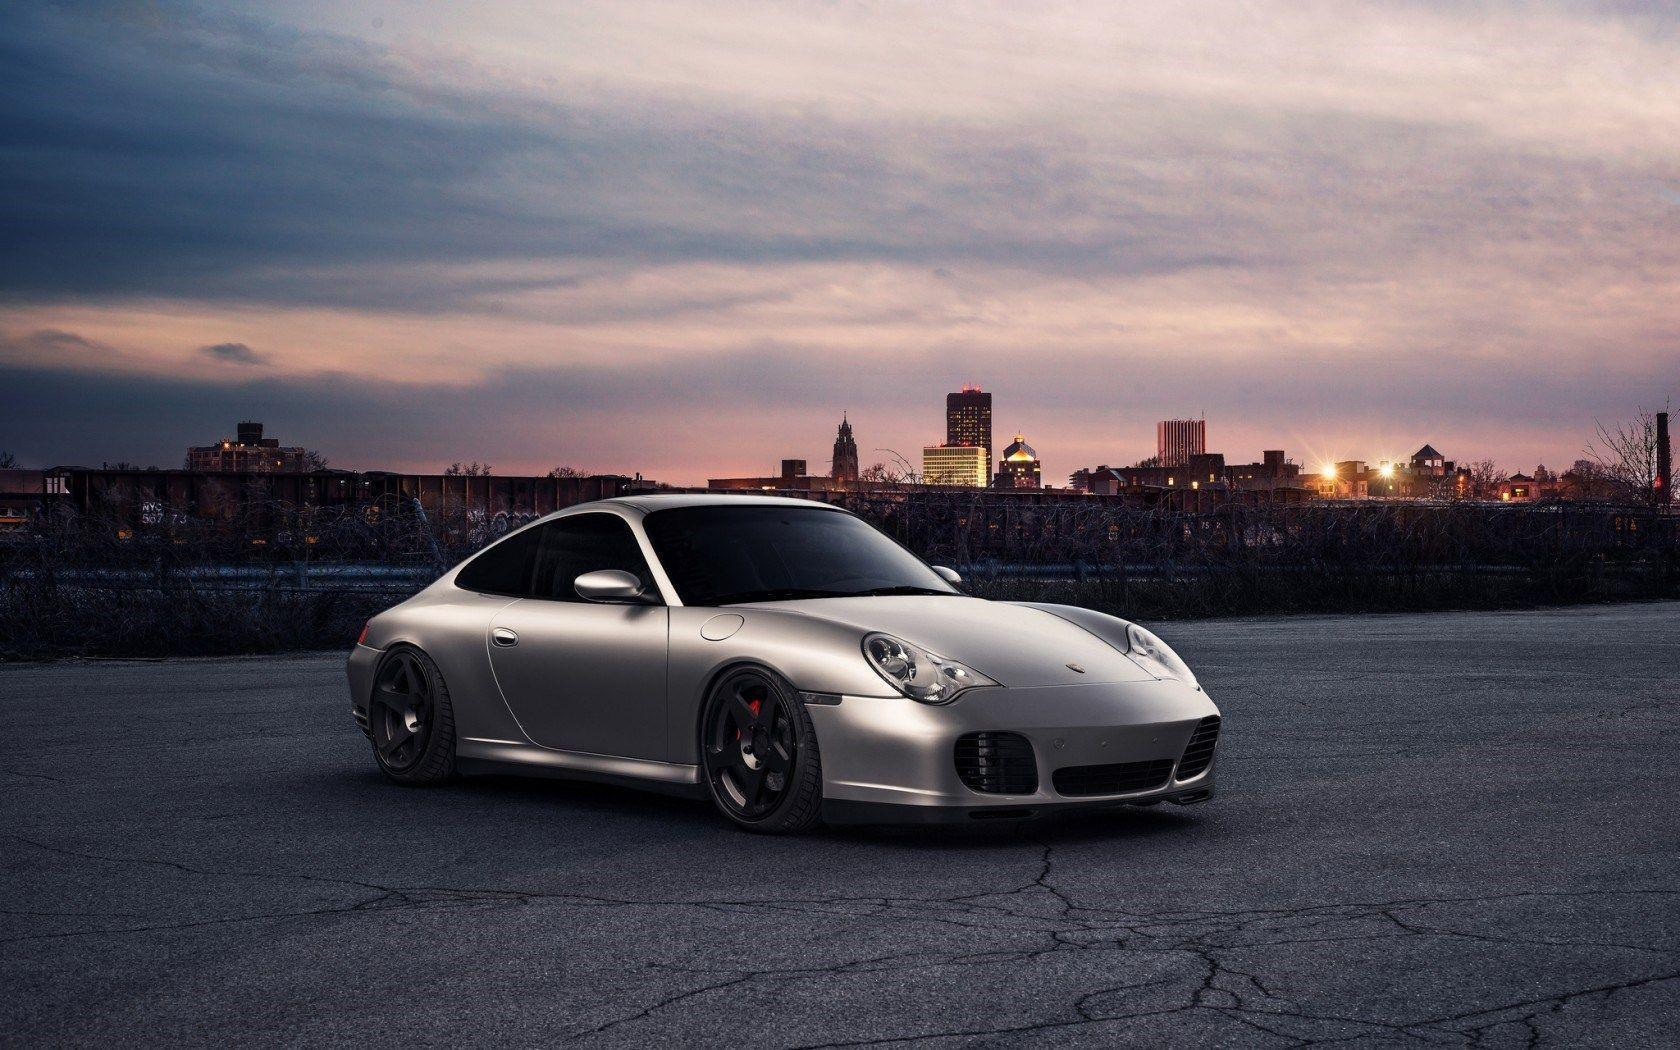 Porsche 911 Front City HD Wallpaper - FreeHDWalls